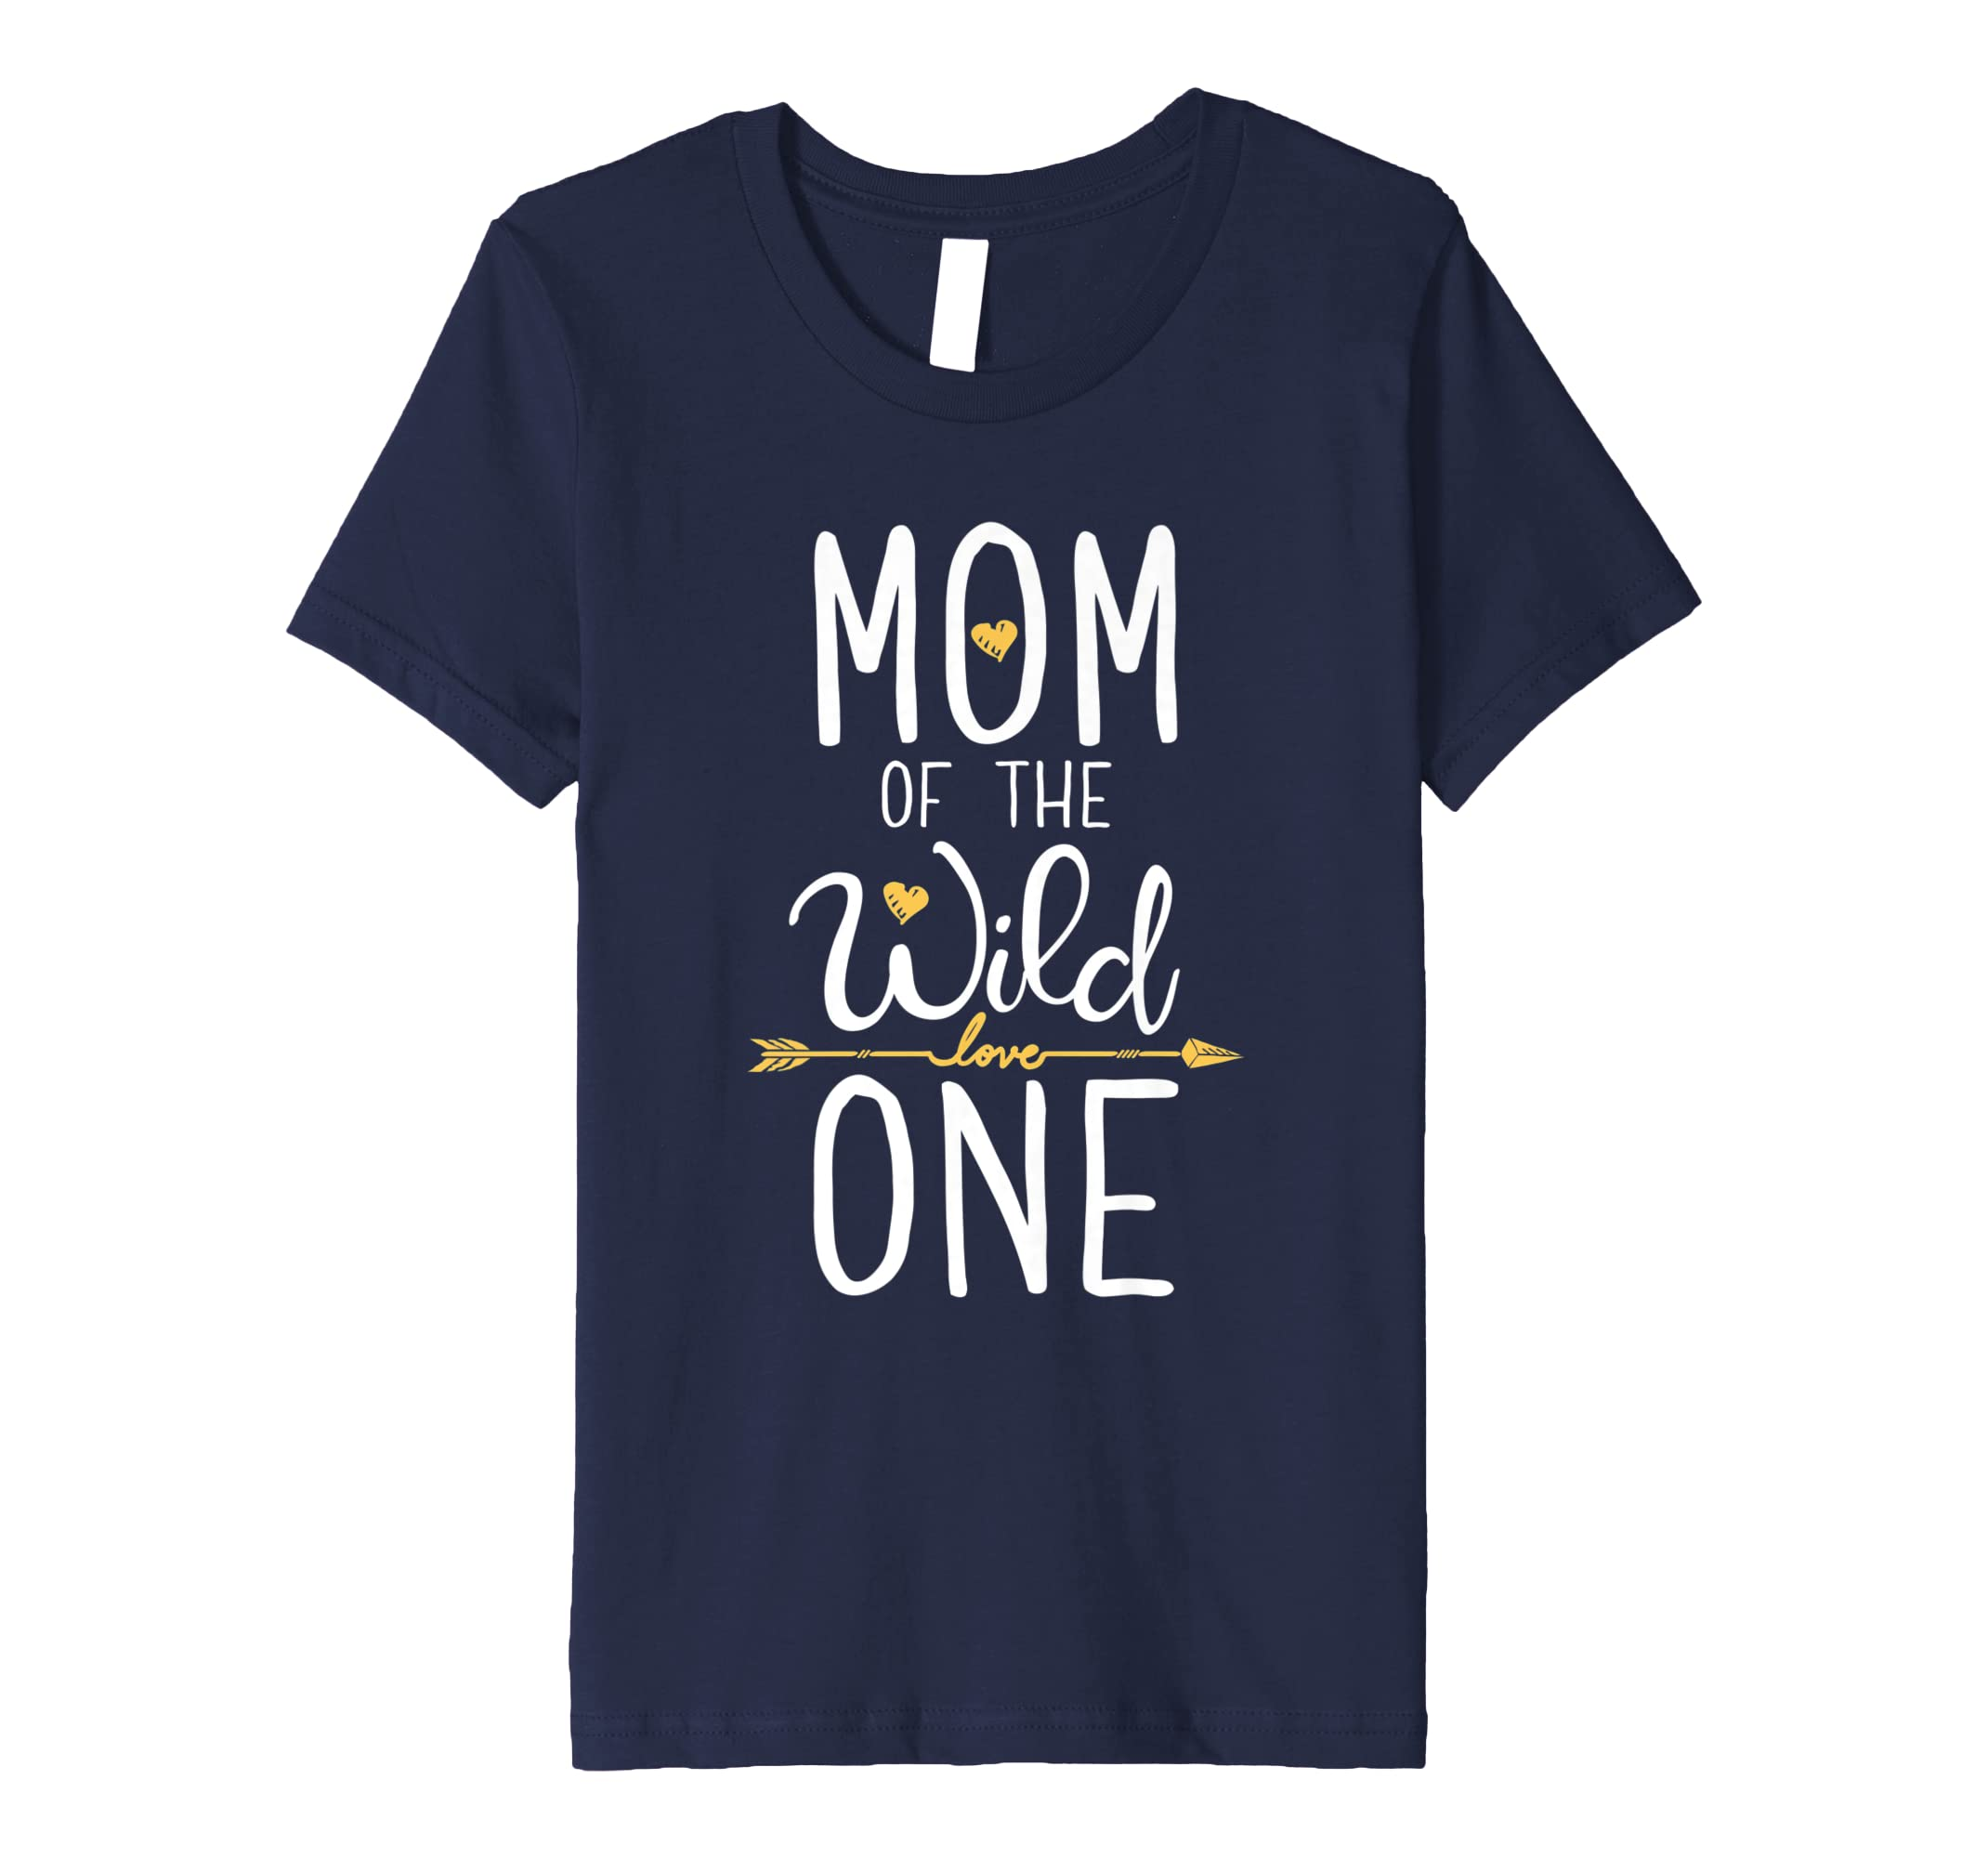 a204d72f Amazon.com: Mom of the Wild One T shirt Mother Moms Mommy Women Gifts:  Clothing